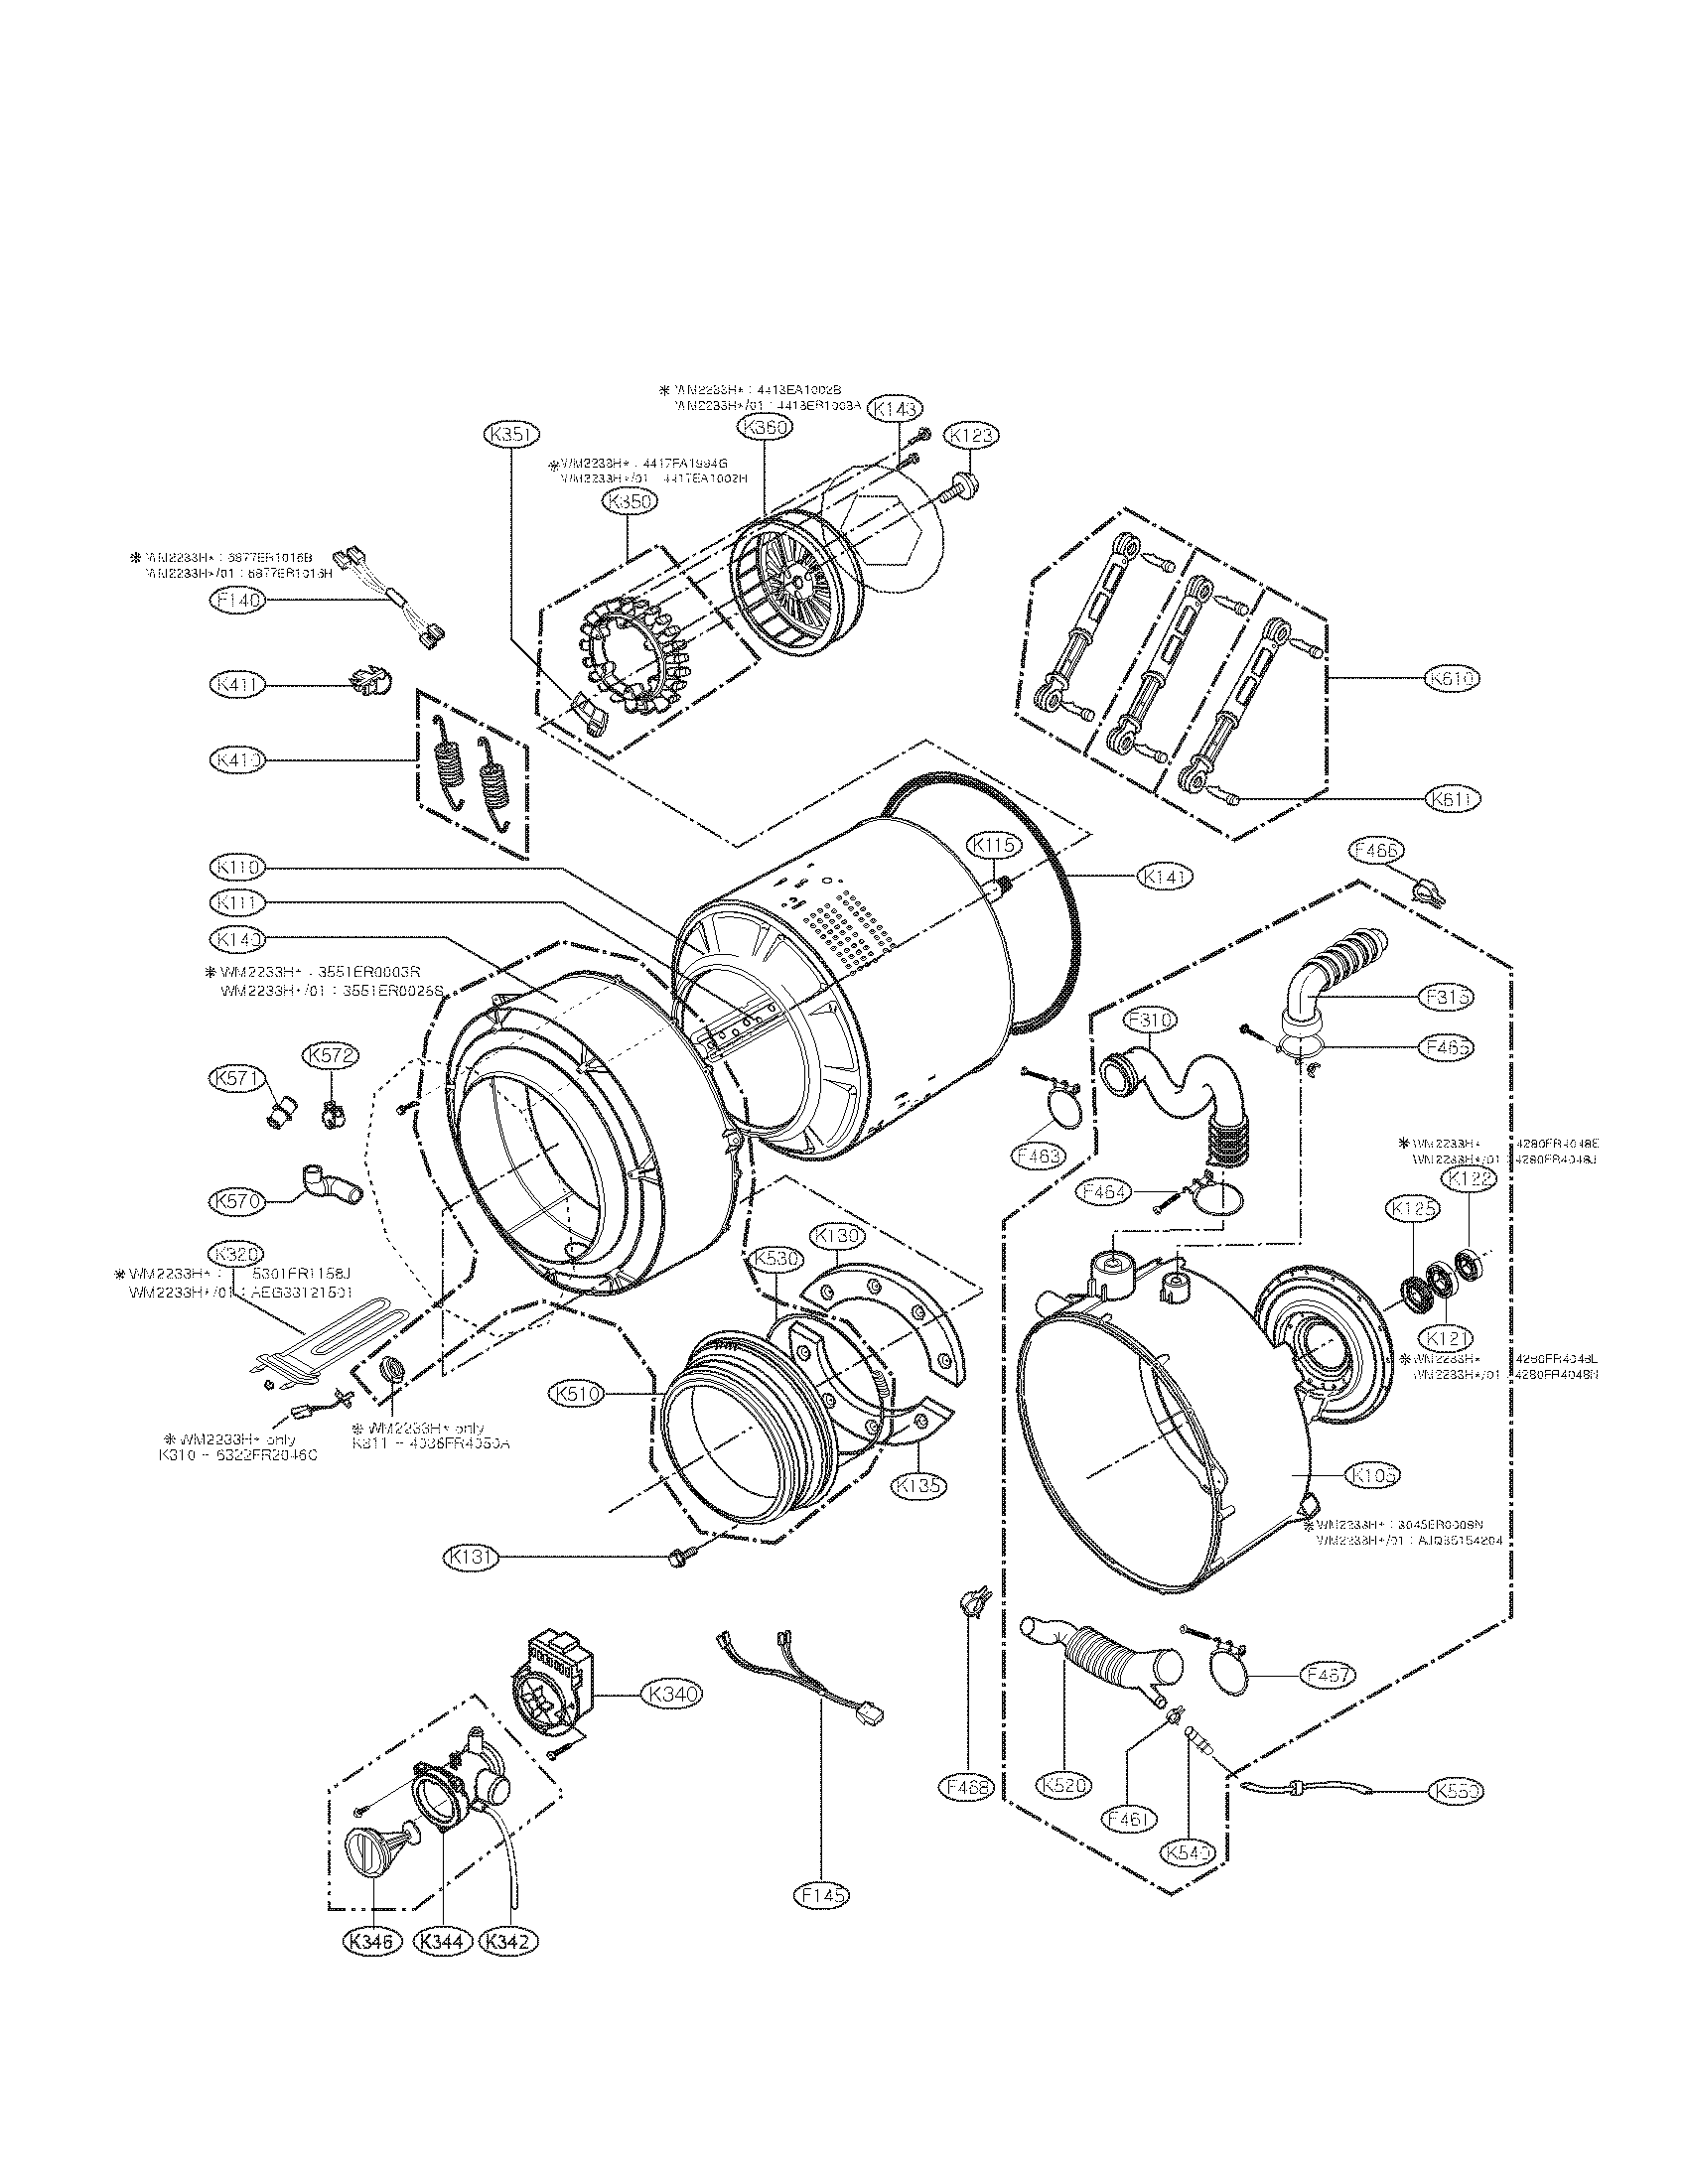 DRUM AND TUB PARTS Diagram & Parts List for Model WM2101HW